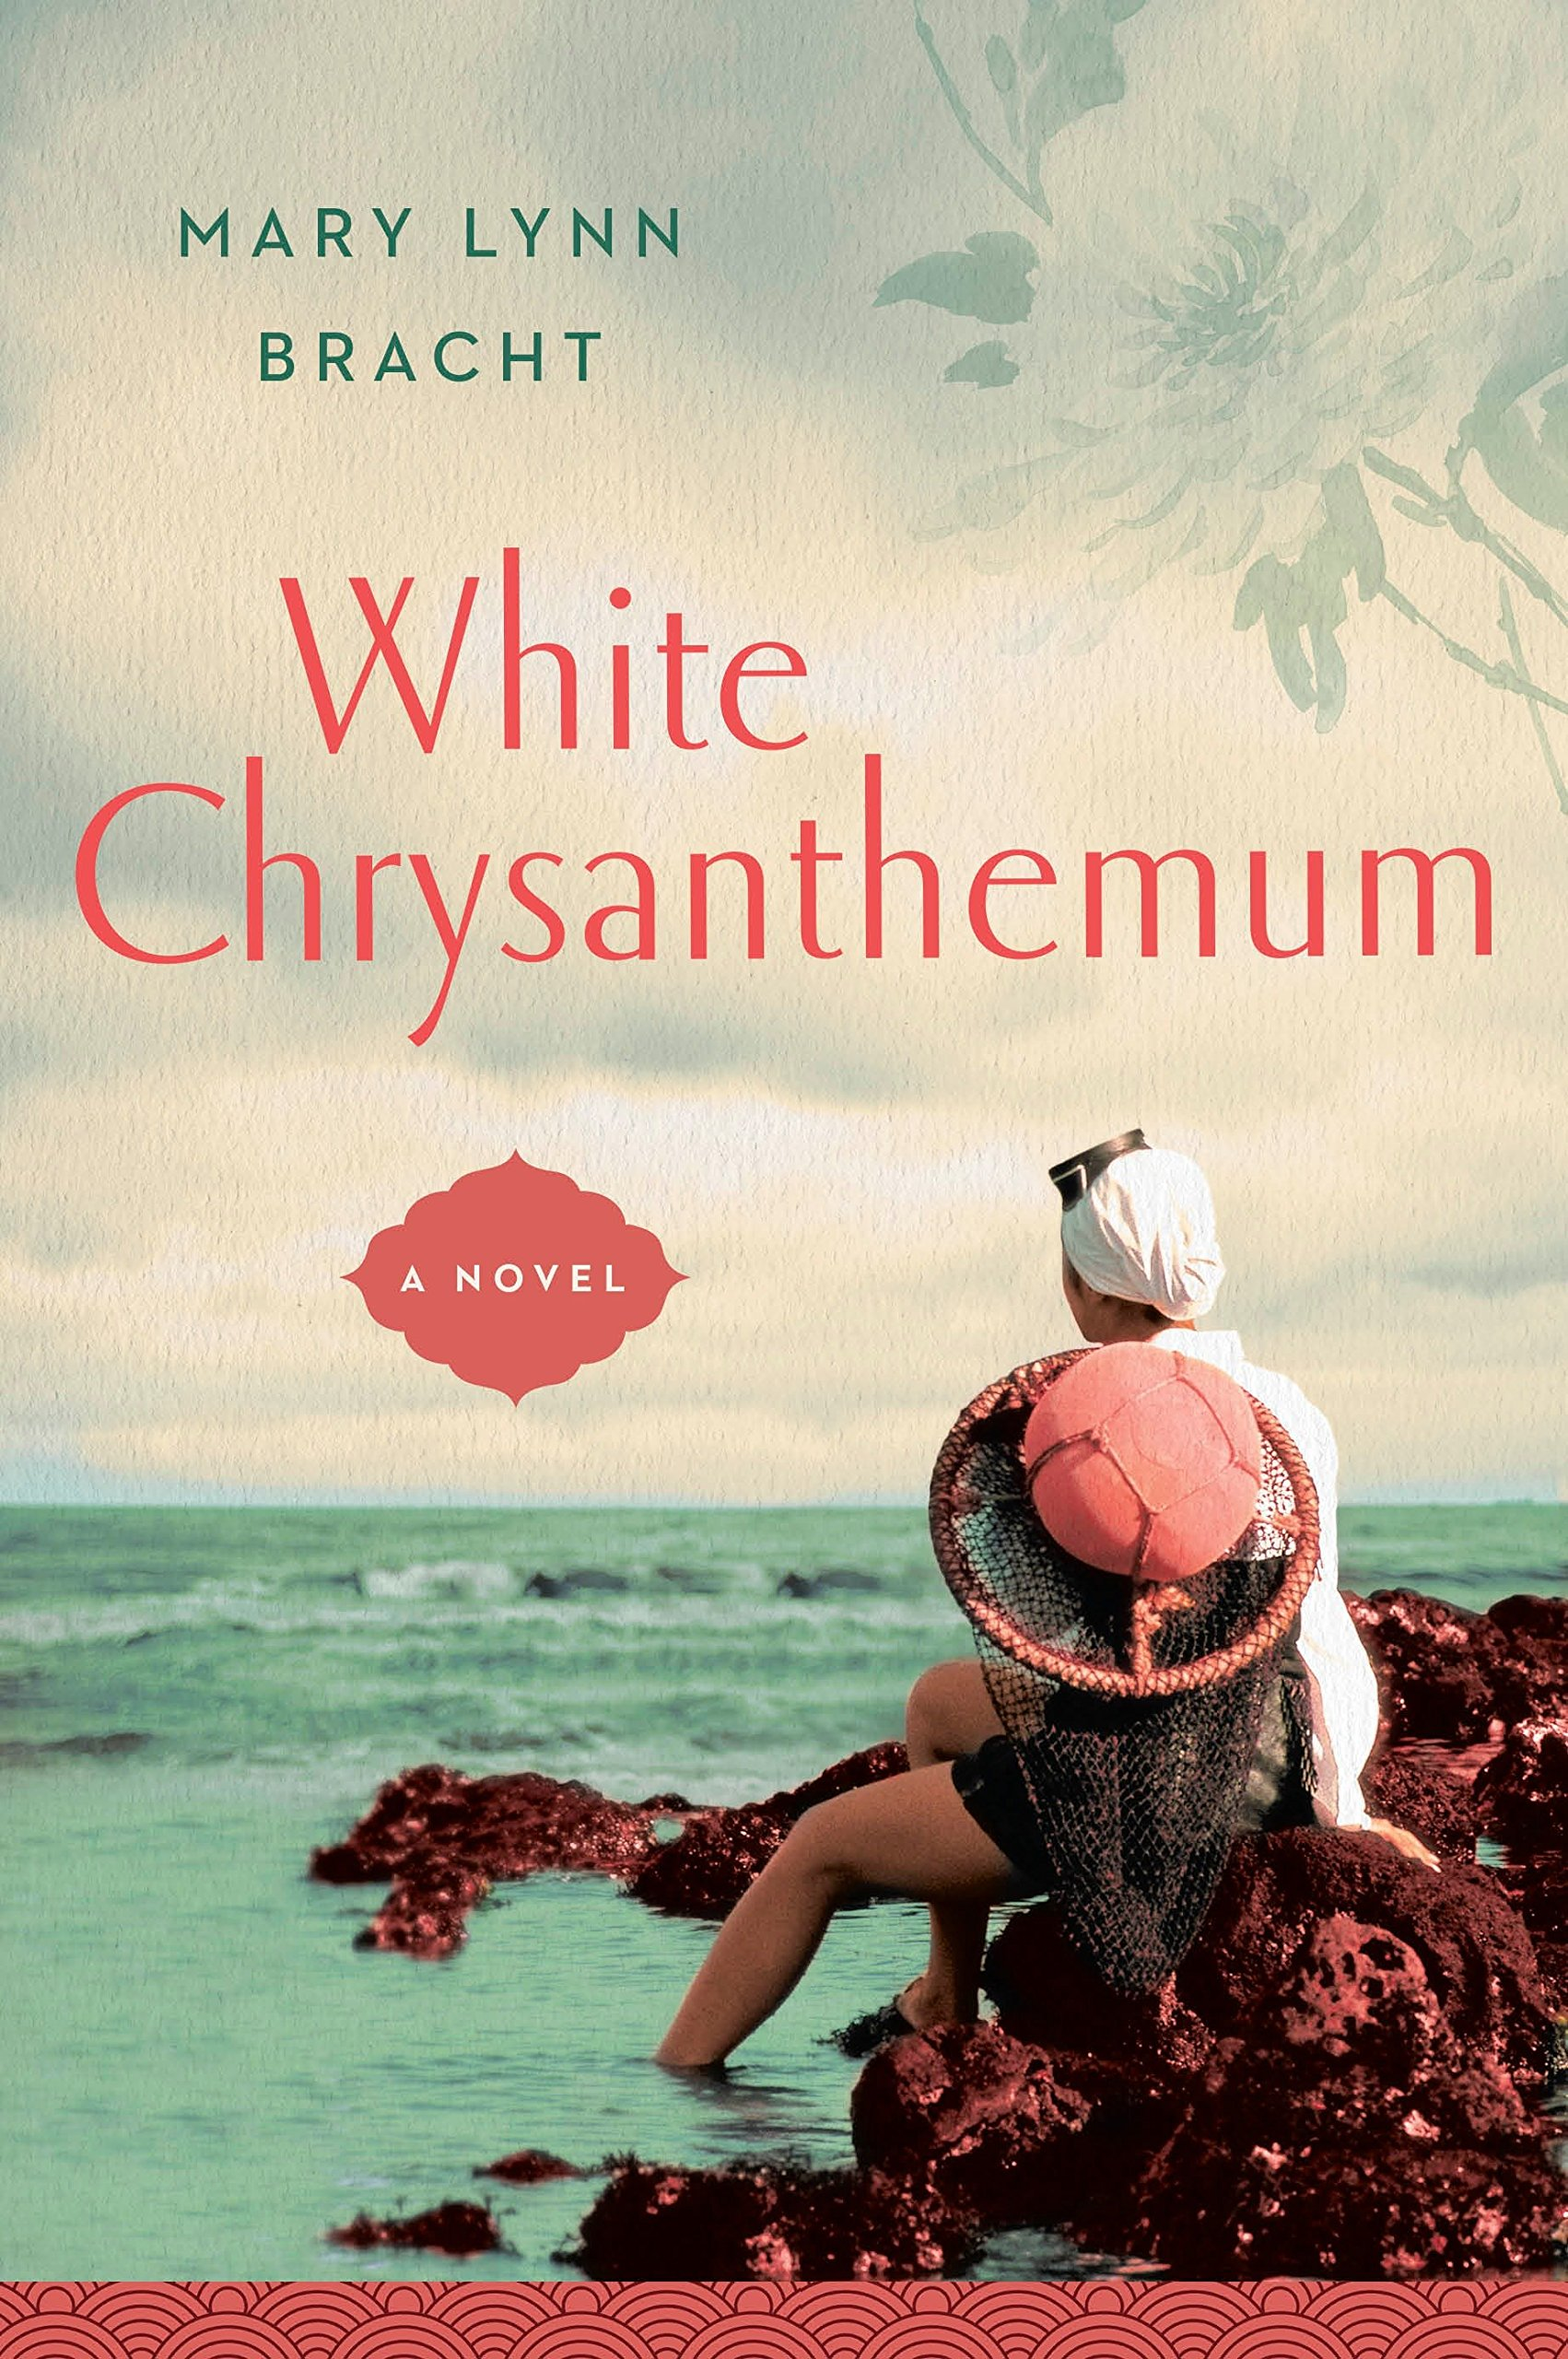 White Chrysanthemum Hardcover – January 30, 2018